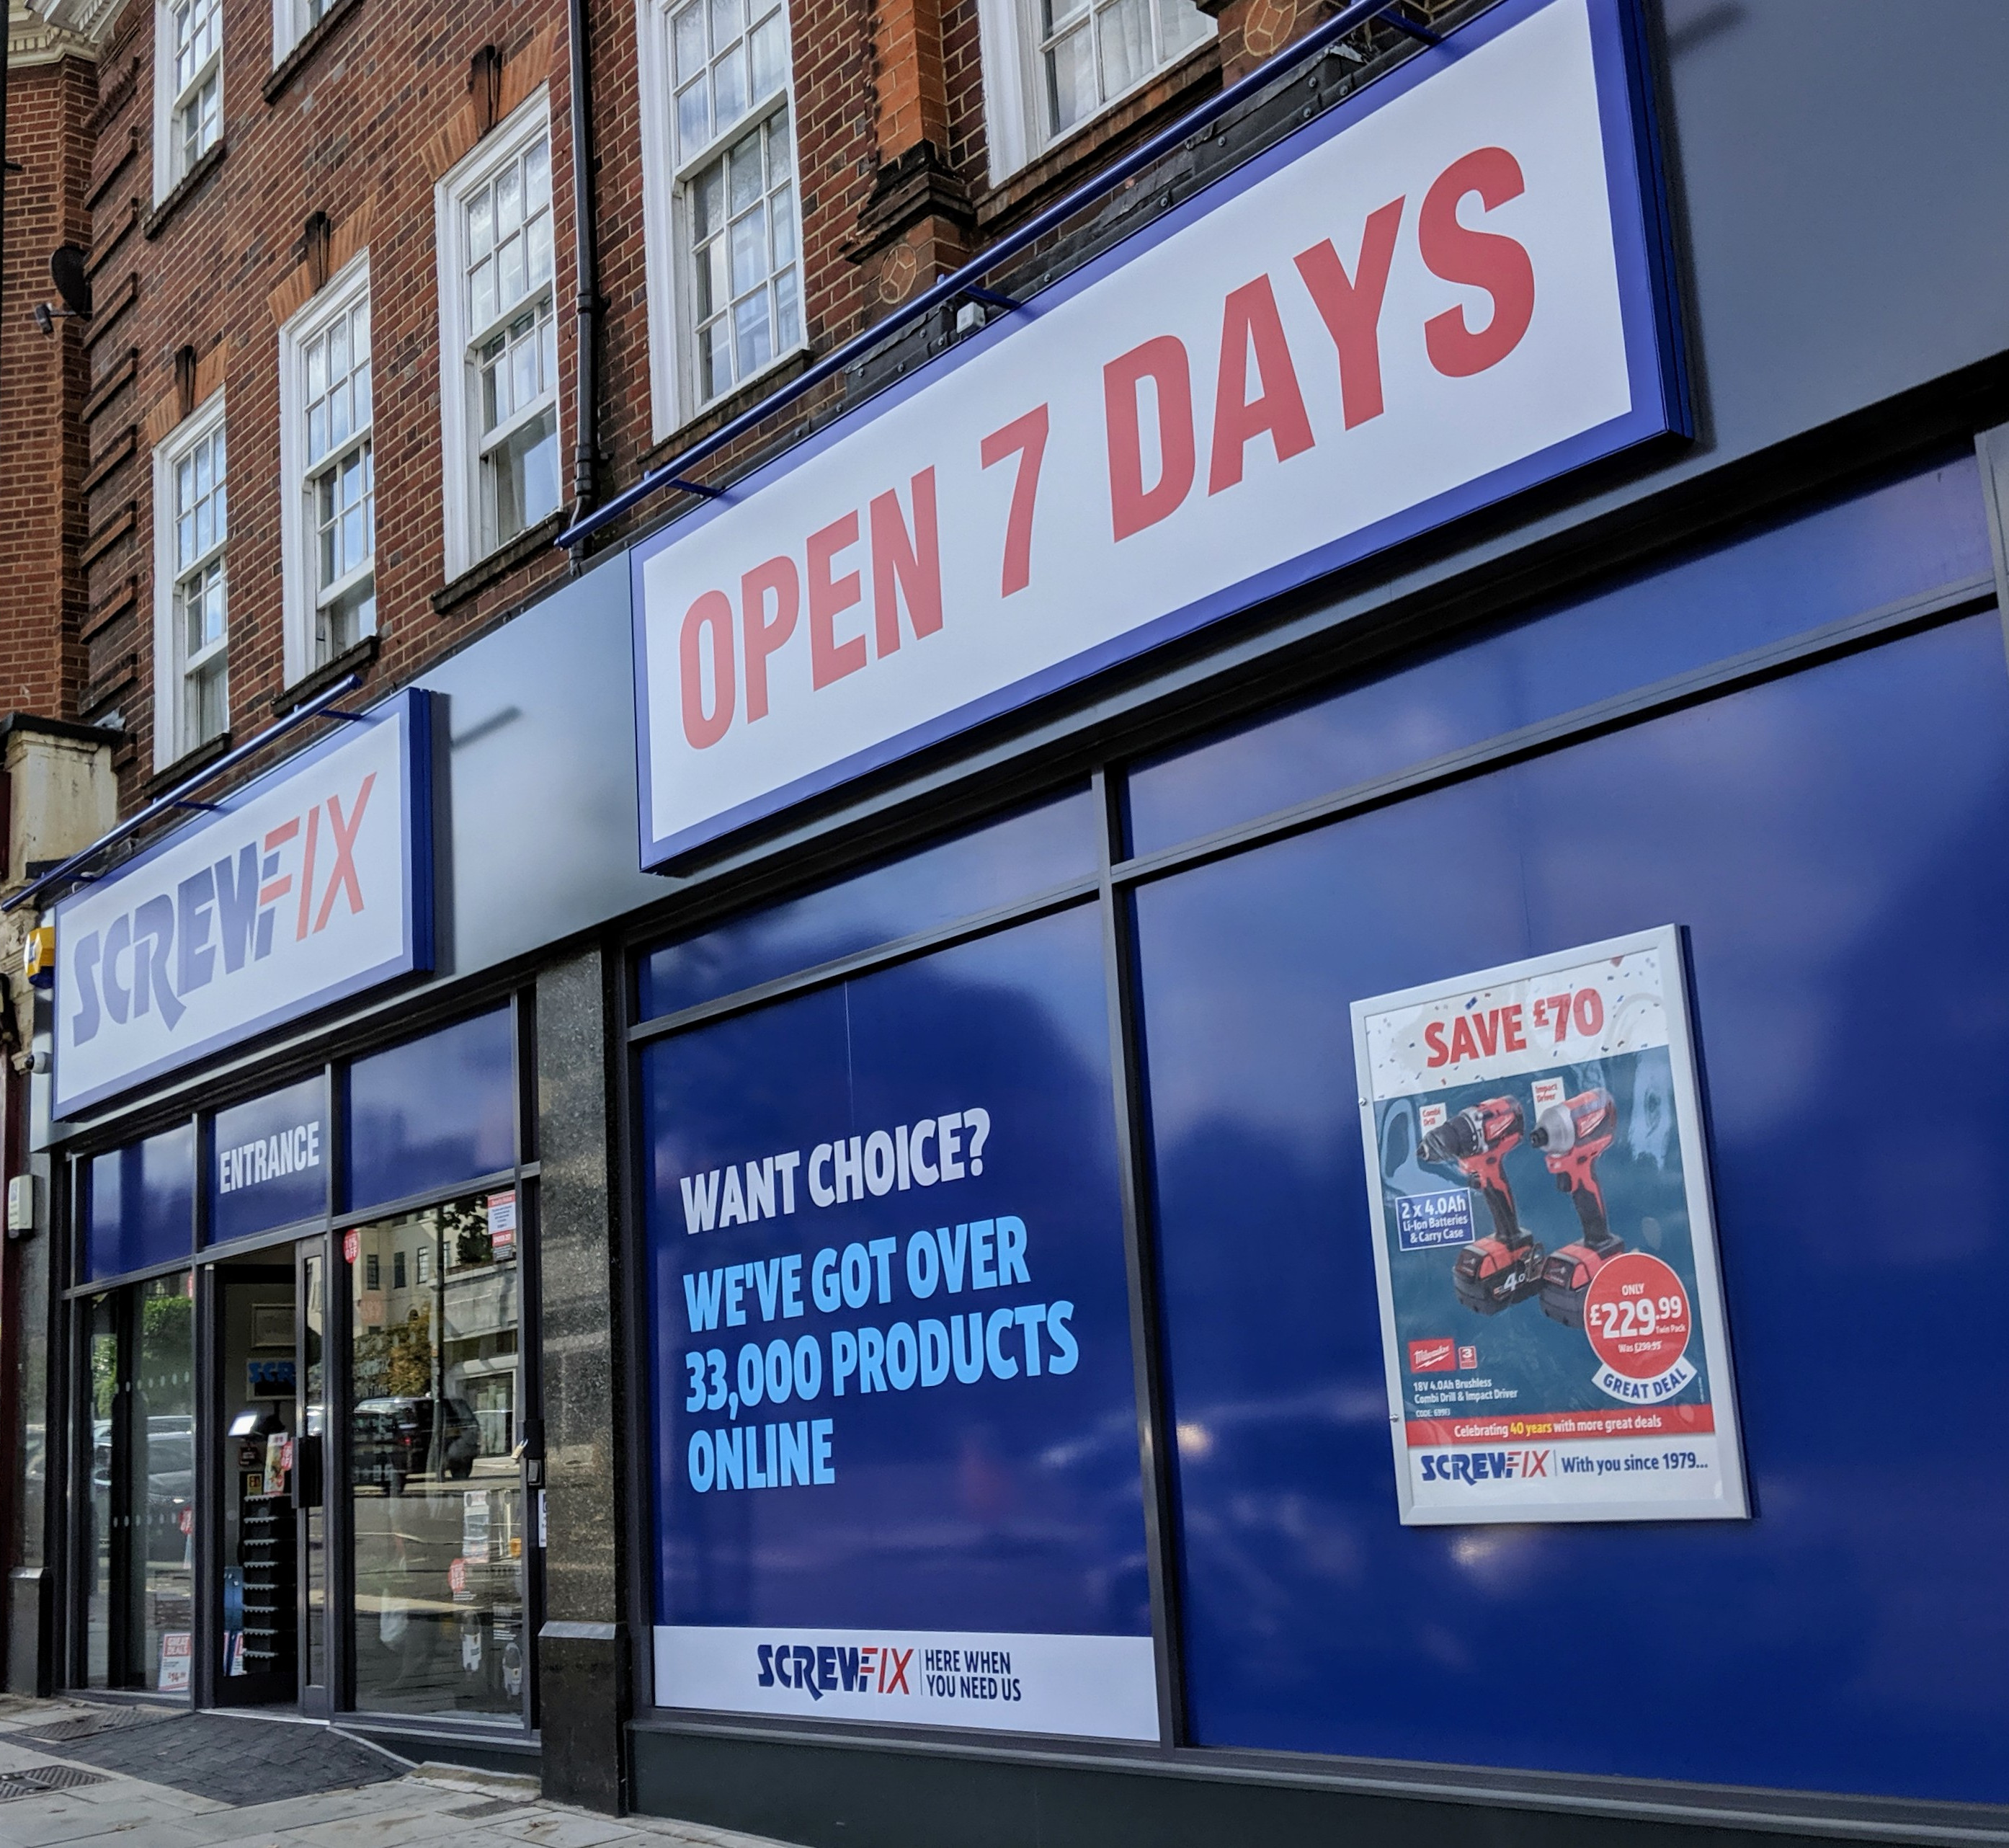 Temple Fortune celebrates new Screwfix store opening